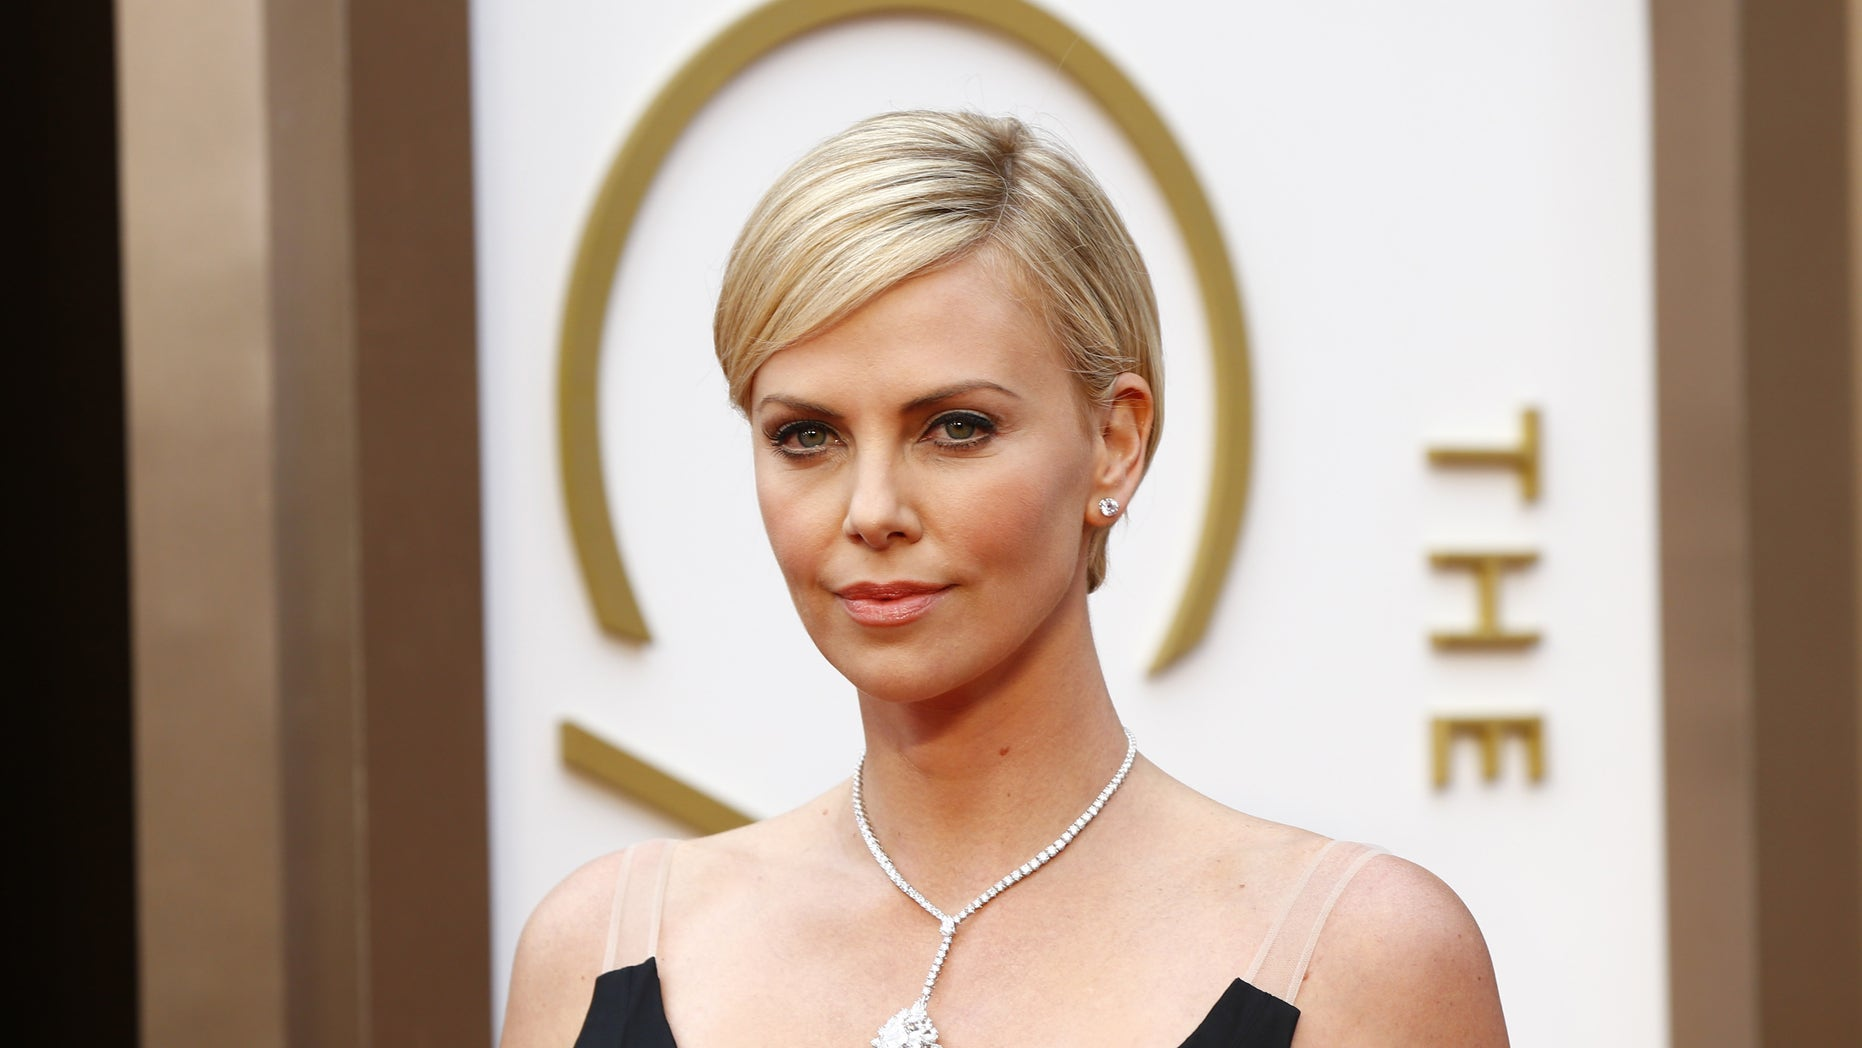 March 2, 2014. Actress Charlize Theron, in a black Dior gown and wearing $15 million worth of Harry Winston diamonds, arrives at the 86th Academy Awards in Hollywood, California.